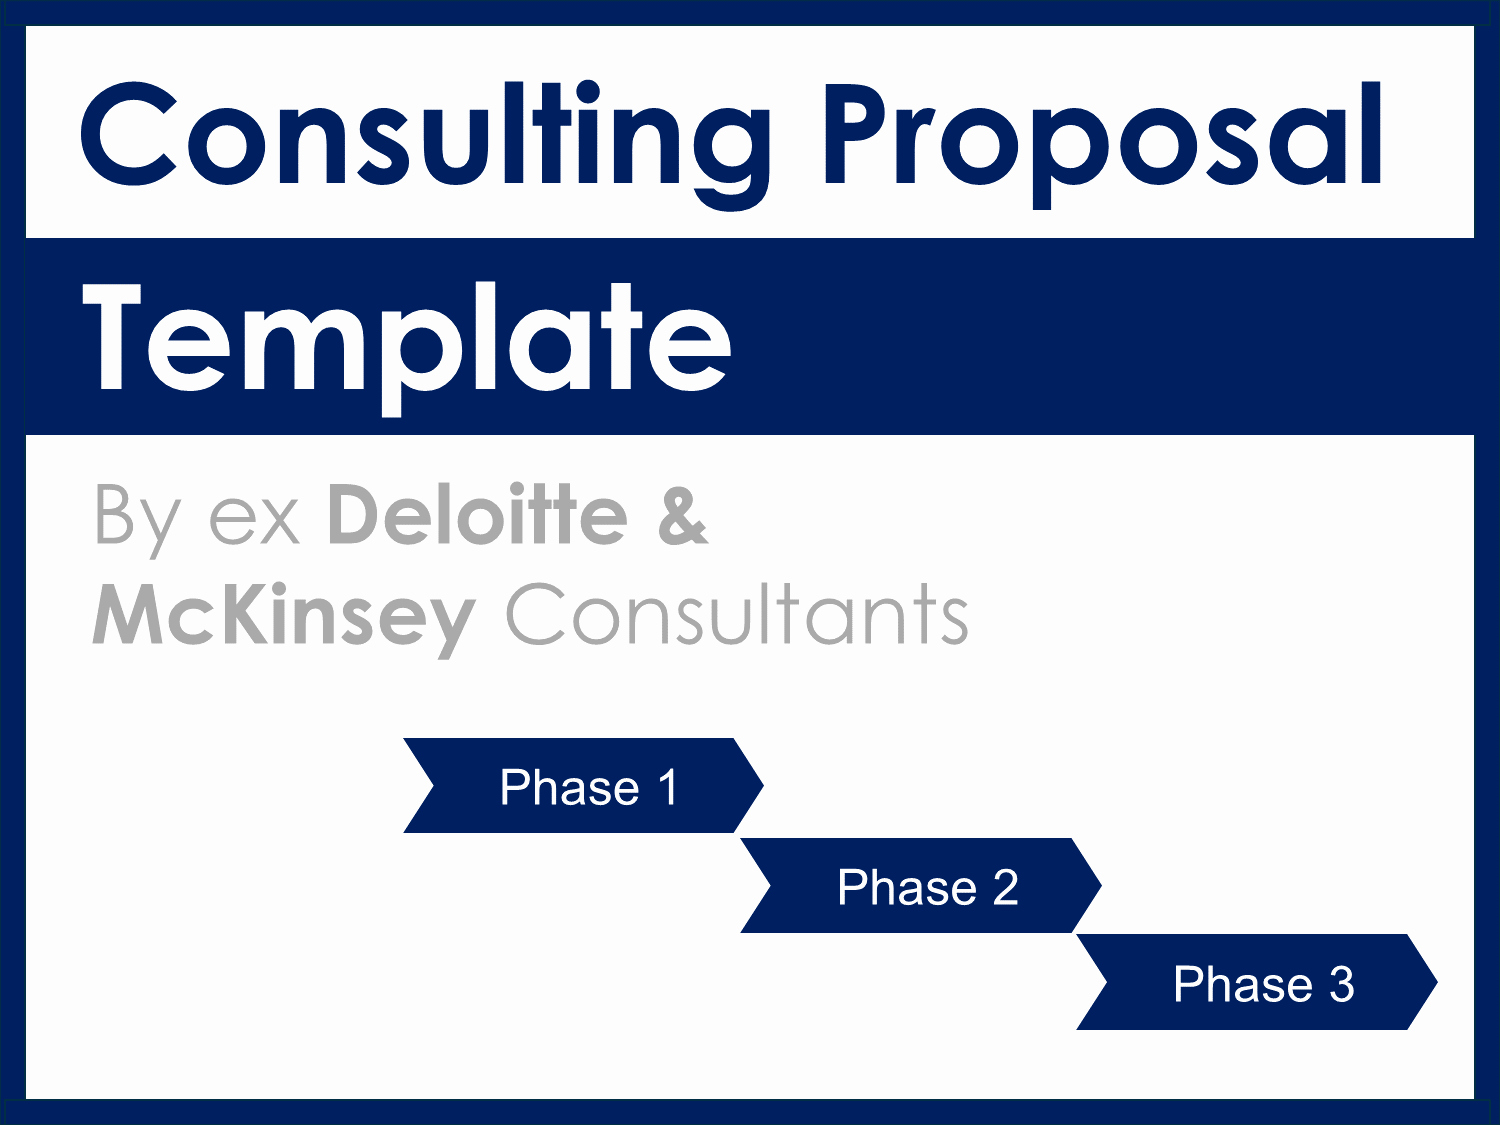 Marketing Consulting Proposal Template Luxury Consulting Proposal Template In Powerpoint